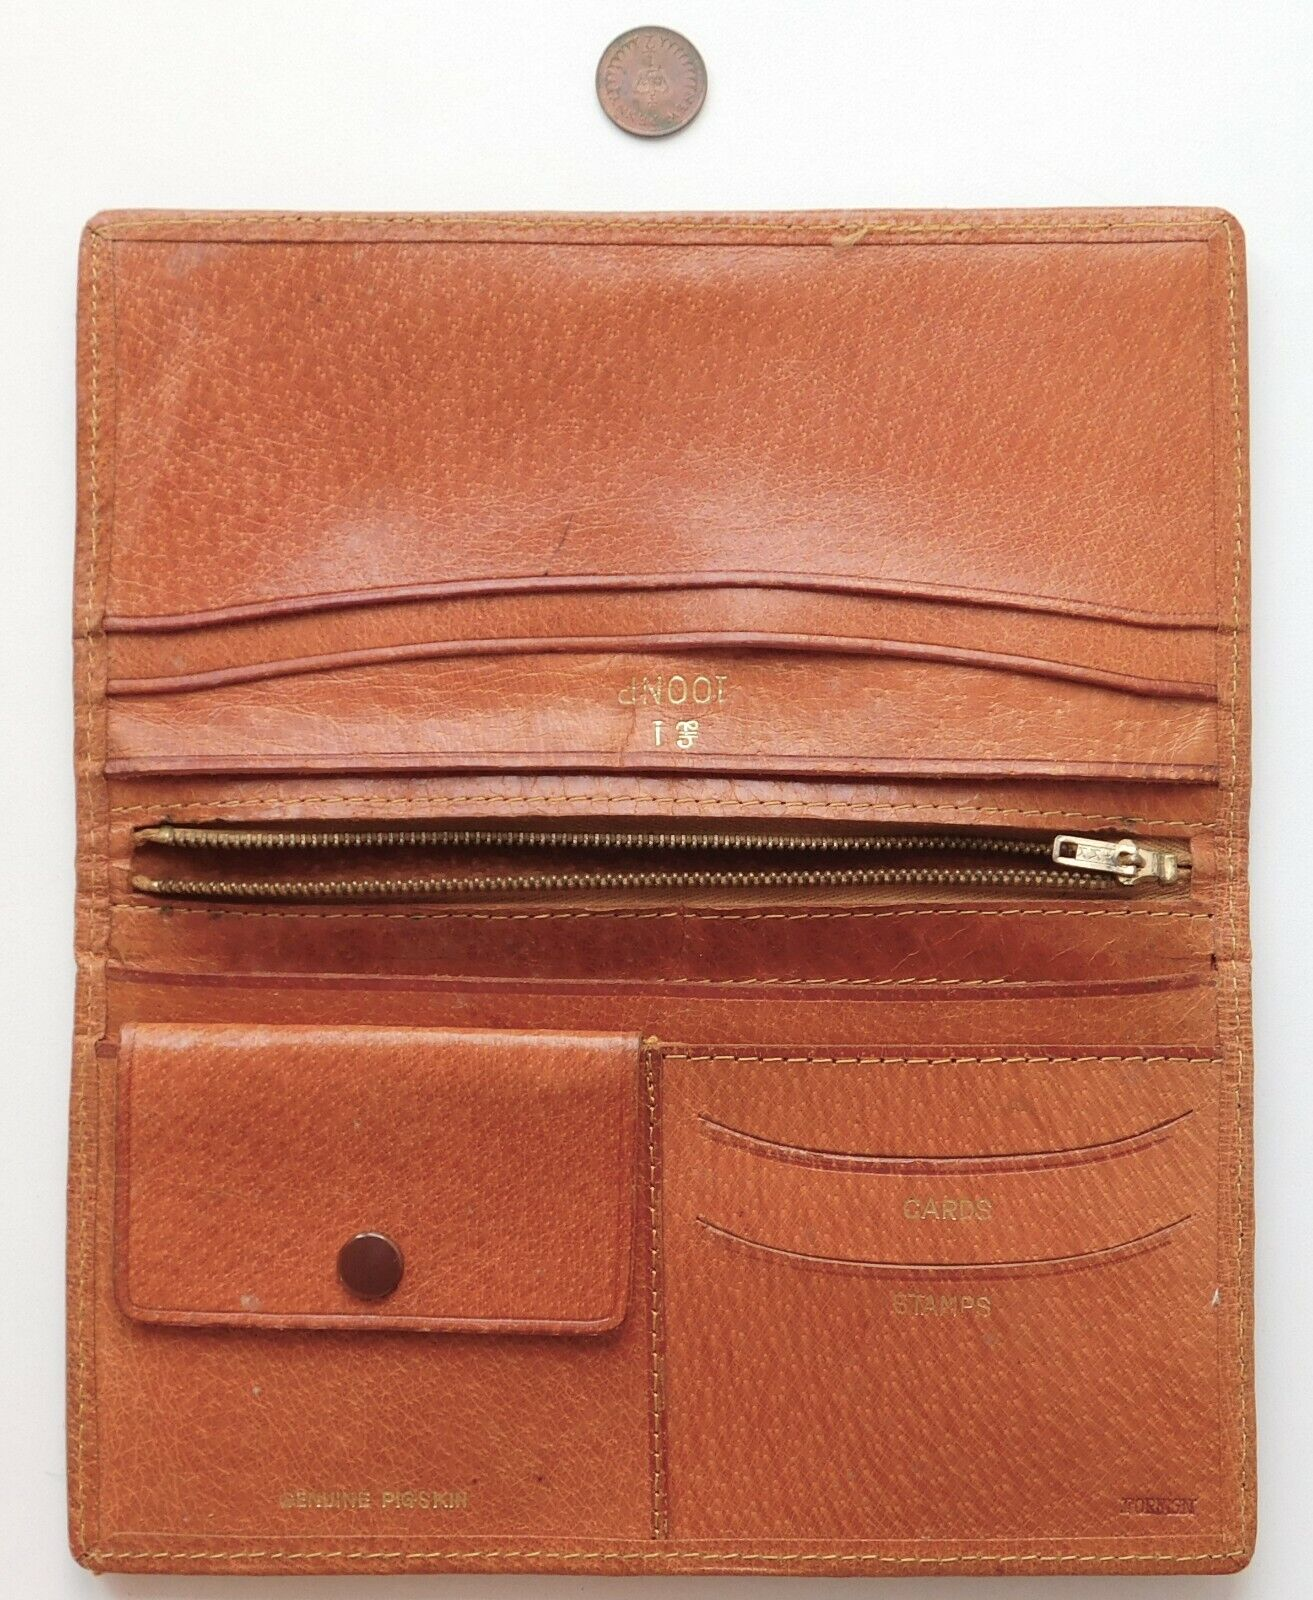 Vintage pigskin wallet with pound note section 100 NP 1960s 1970s Real leather